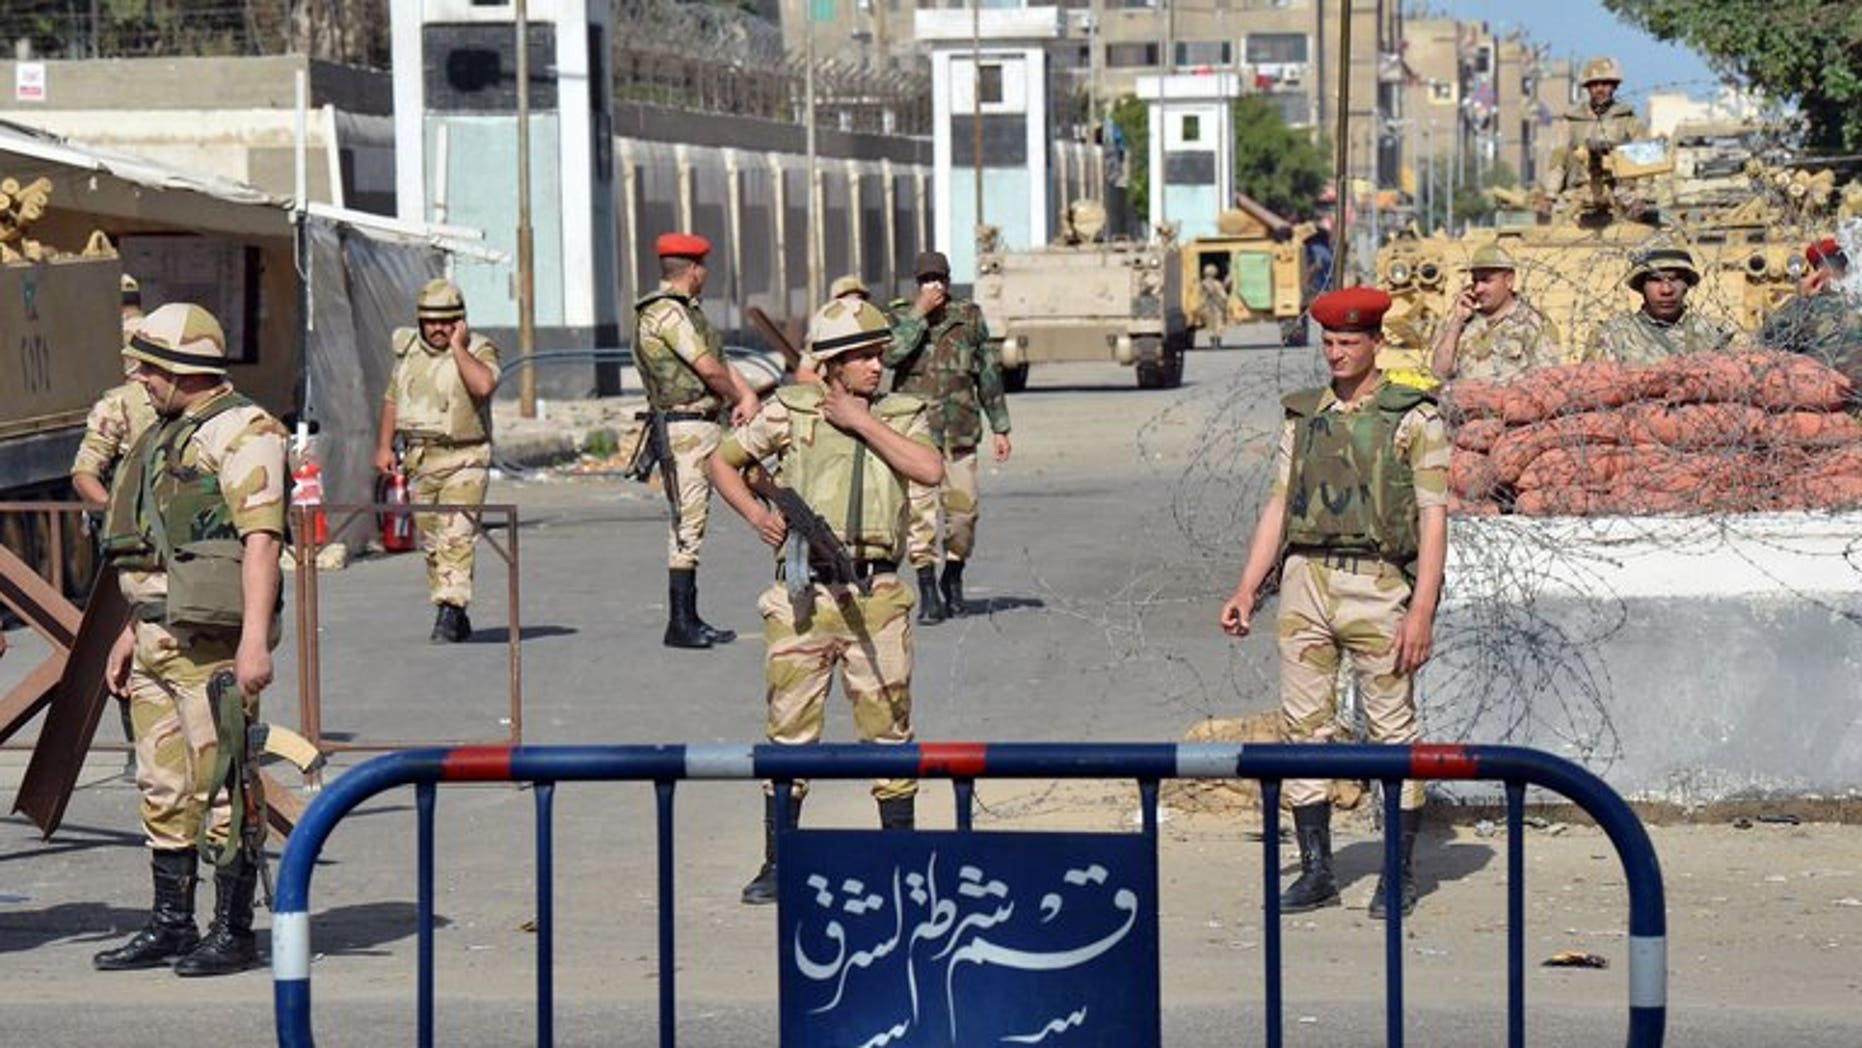 Egyptian soldiers stand guard in front of a prison in the Suez Canal city of Port Said on March 9, 2013. Egyptian military engineers have defused mortar rounds rigged to explode on a railroad linking the canal cities of Ismailiya and Suez, security officials said.